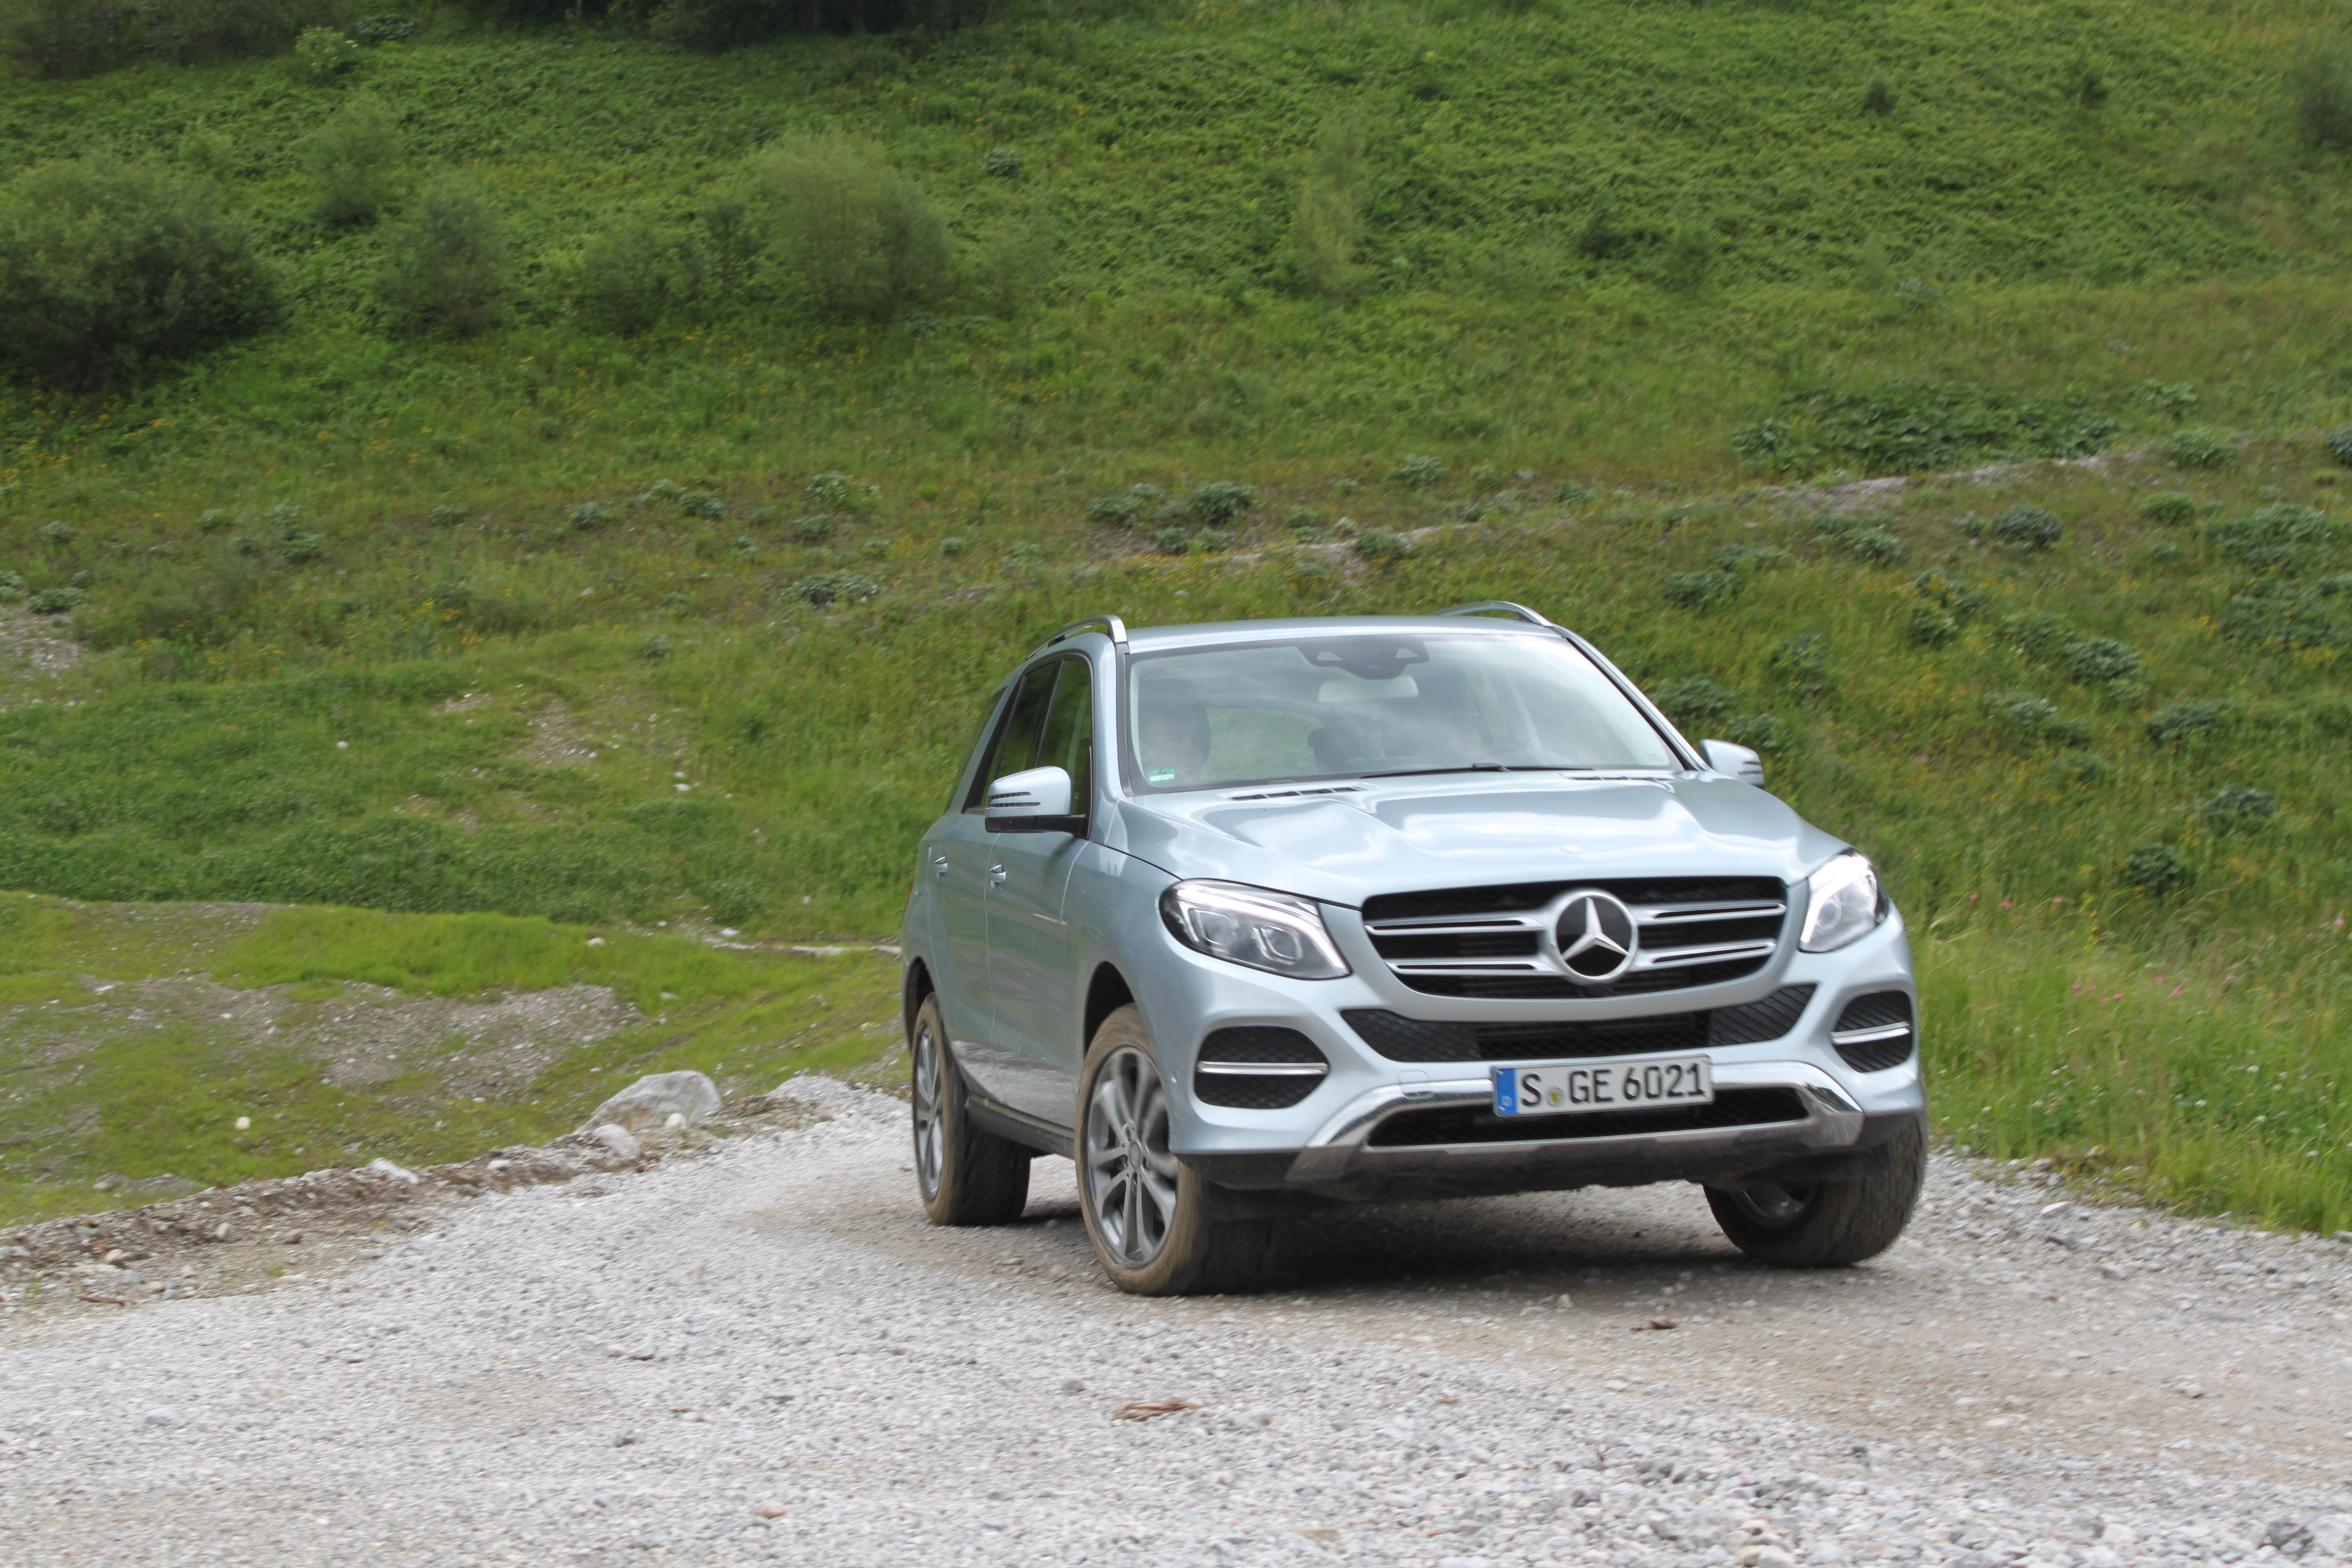 2016 mercedes benz gle class review news. Black Bedroom Furniture Sets. Home Design Ideas